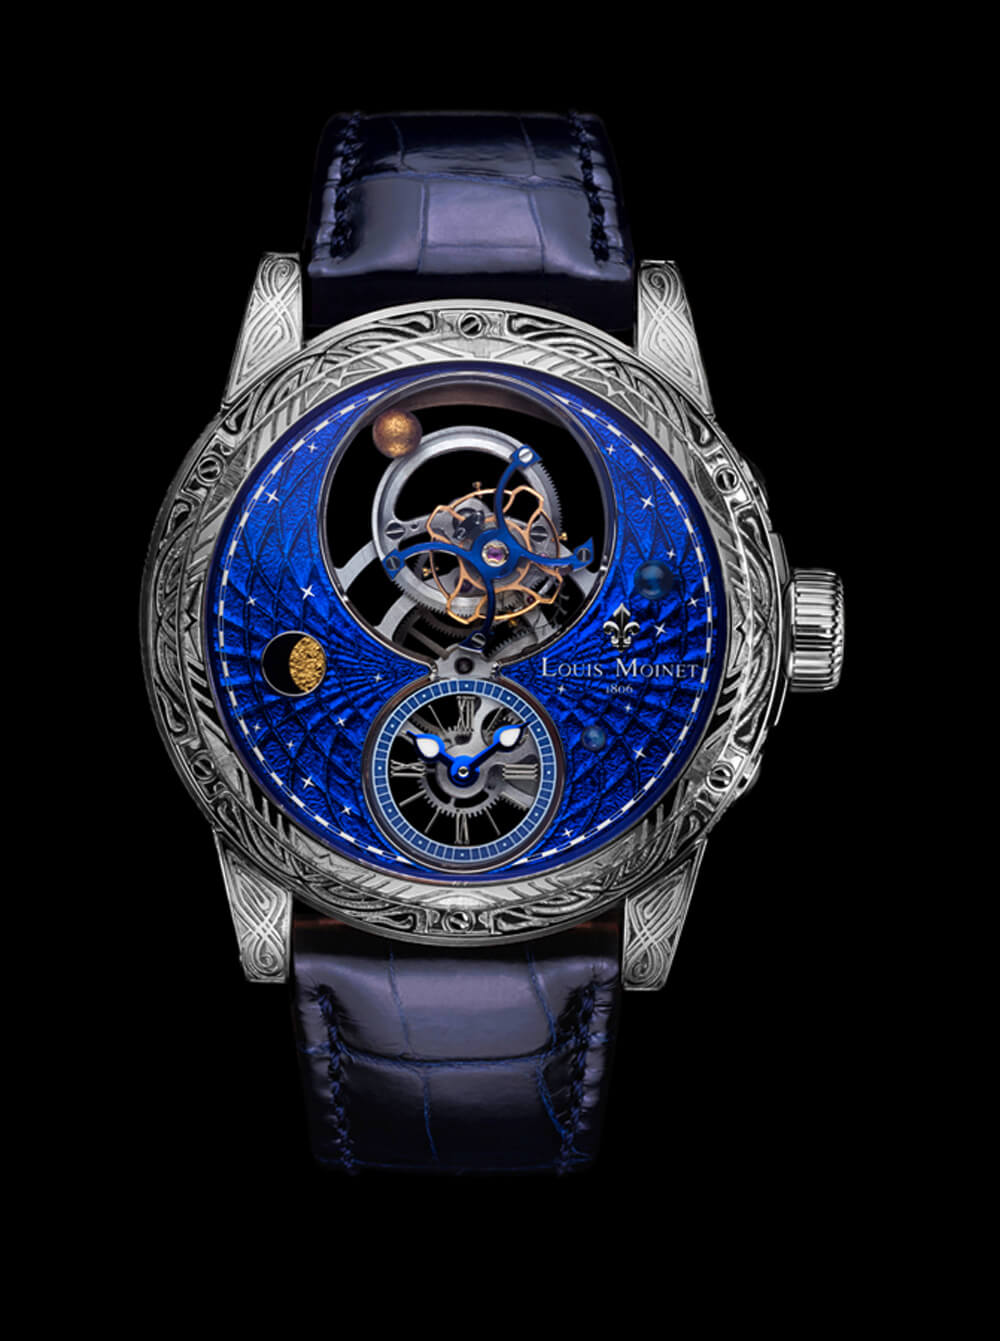 Louis Moinet tourbillon timepiece with magic blue dial